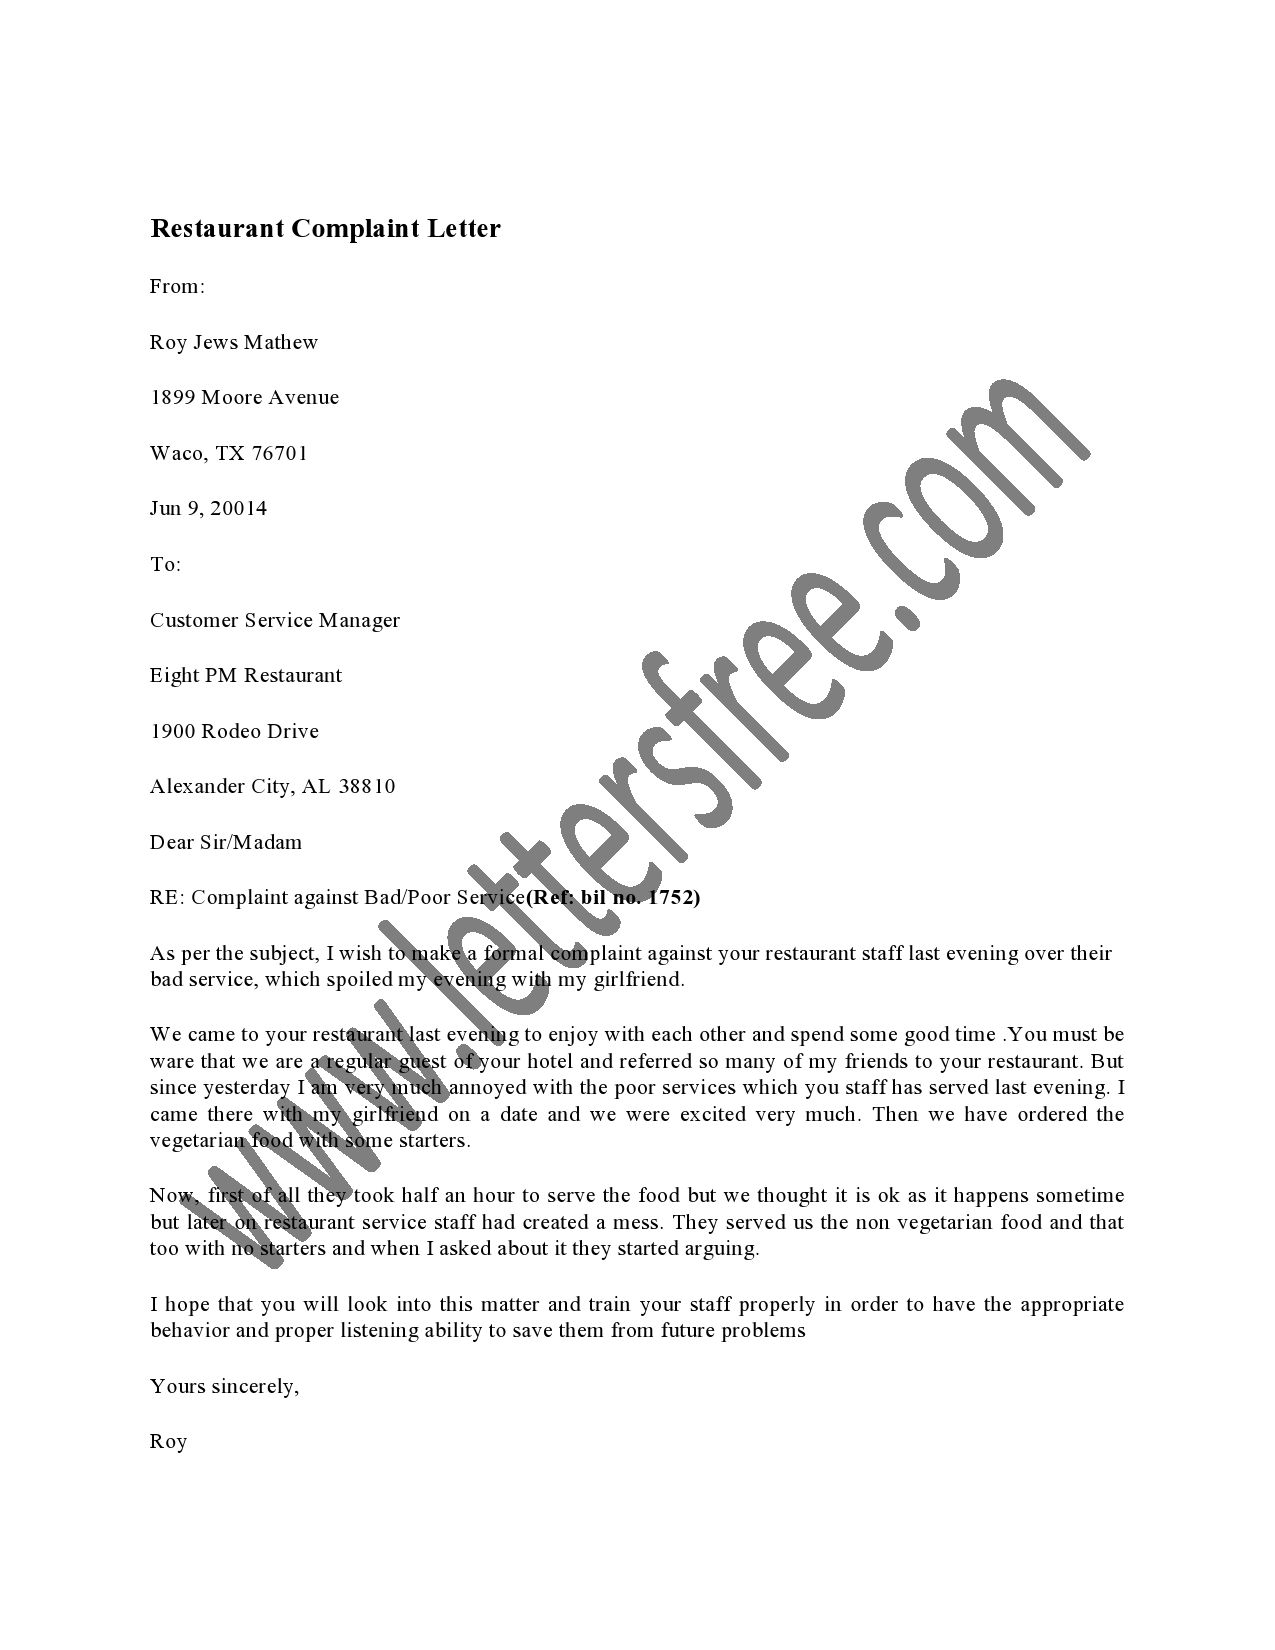 Restaurant Complaint Letter Usually Sent Frustrated Customer The